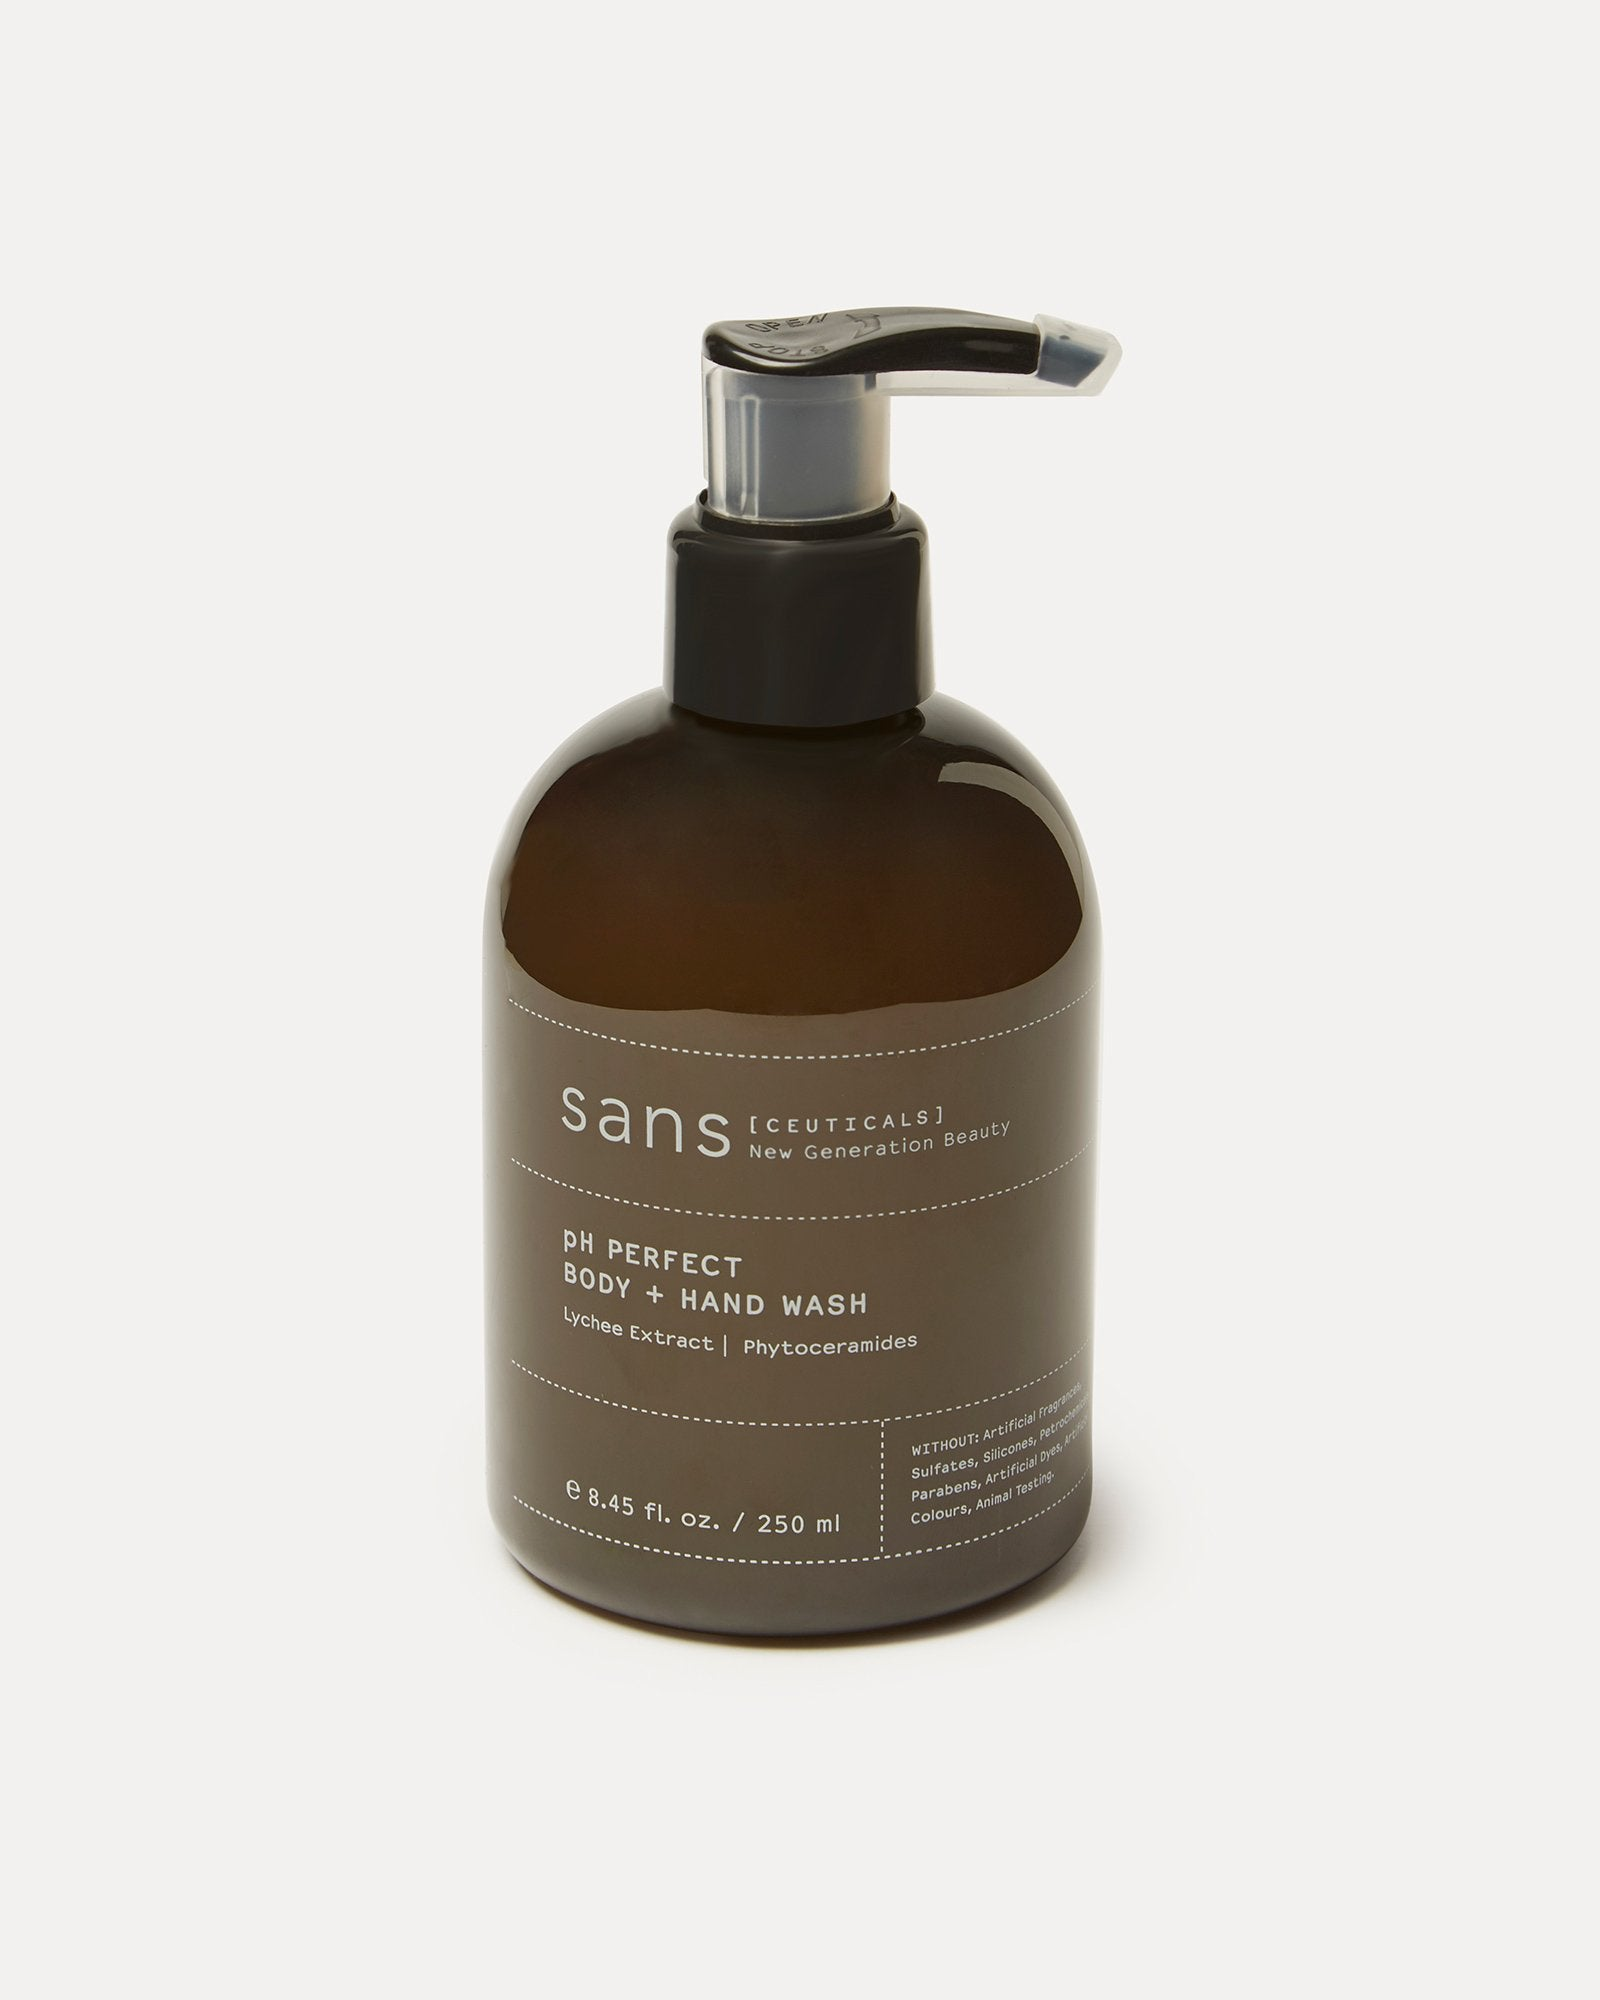 Sans - pH Perfect Body + Hand Wash